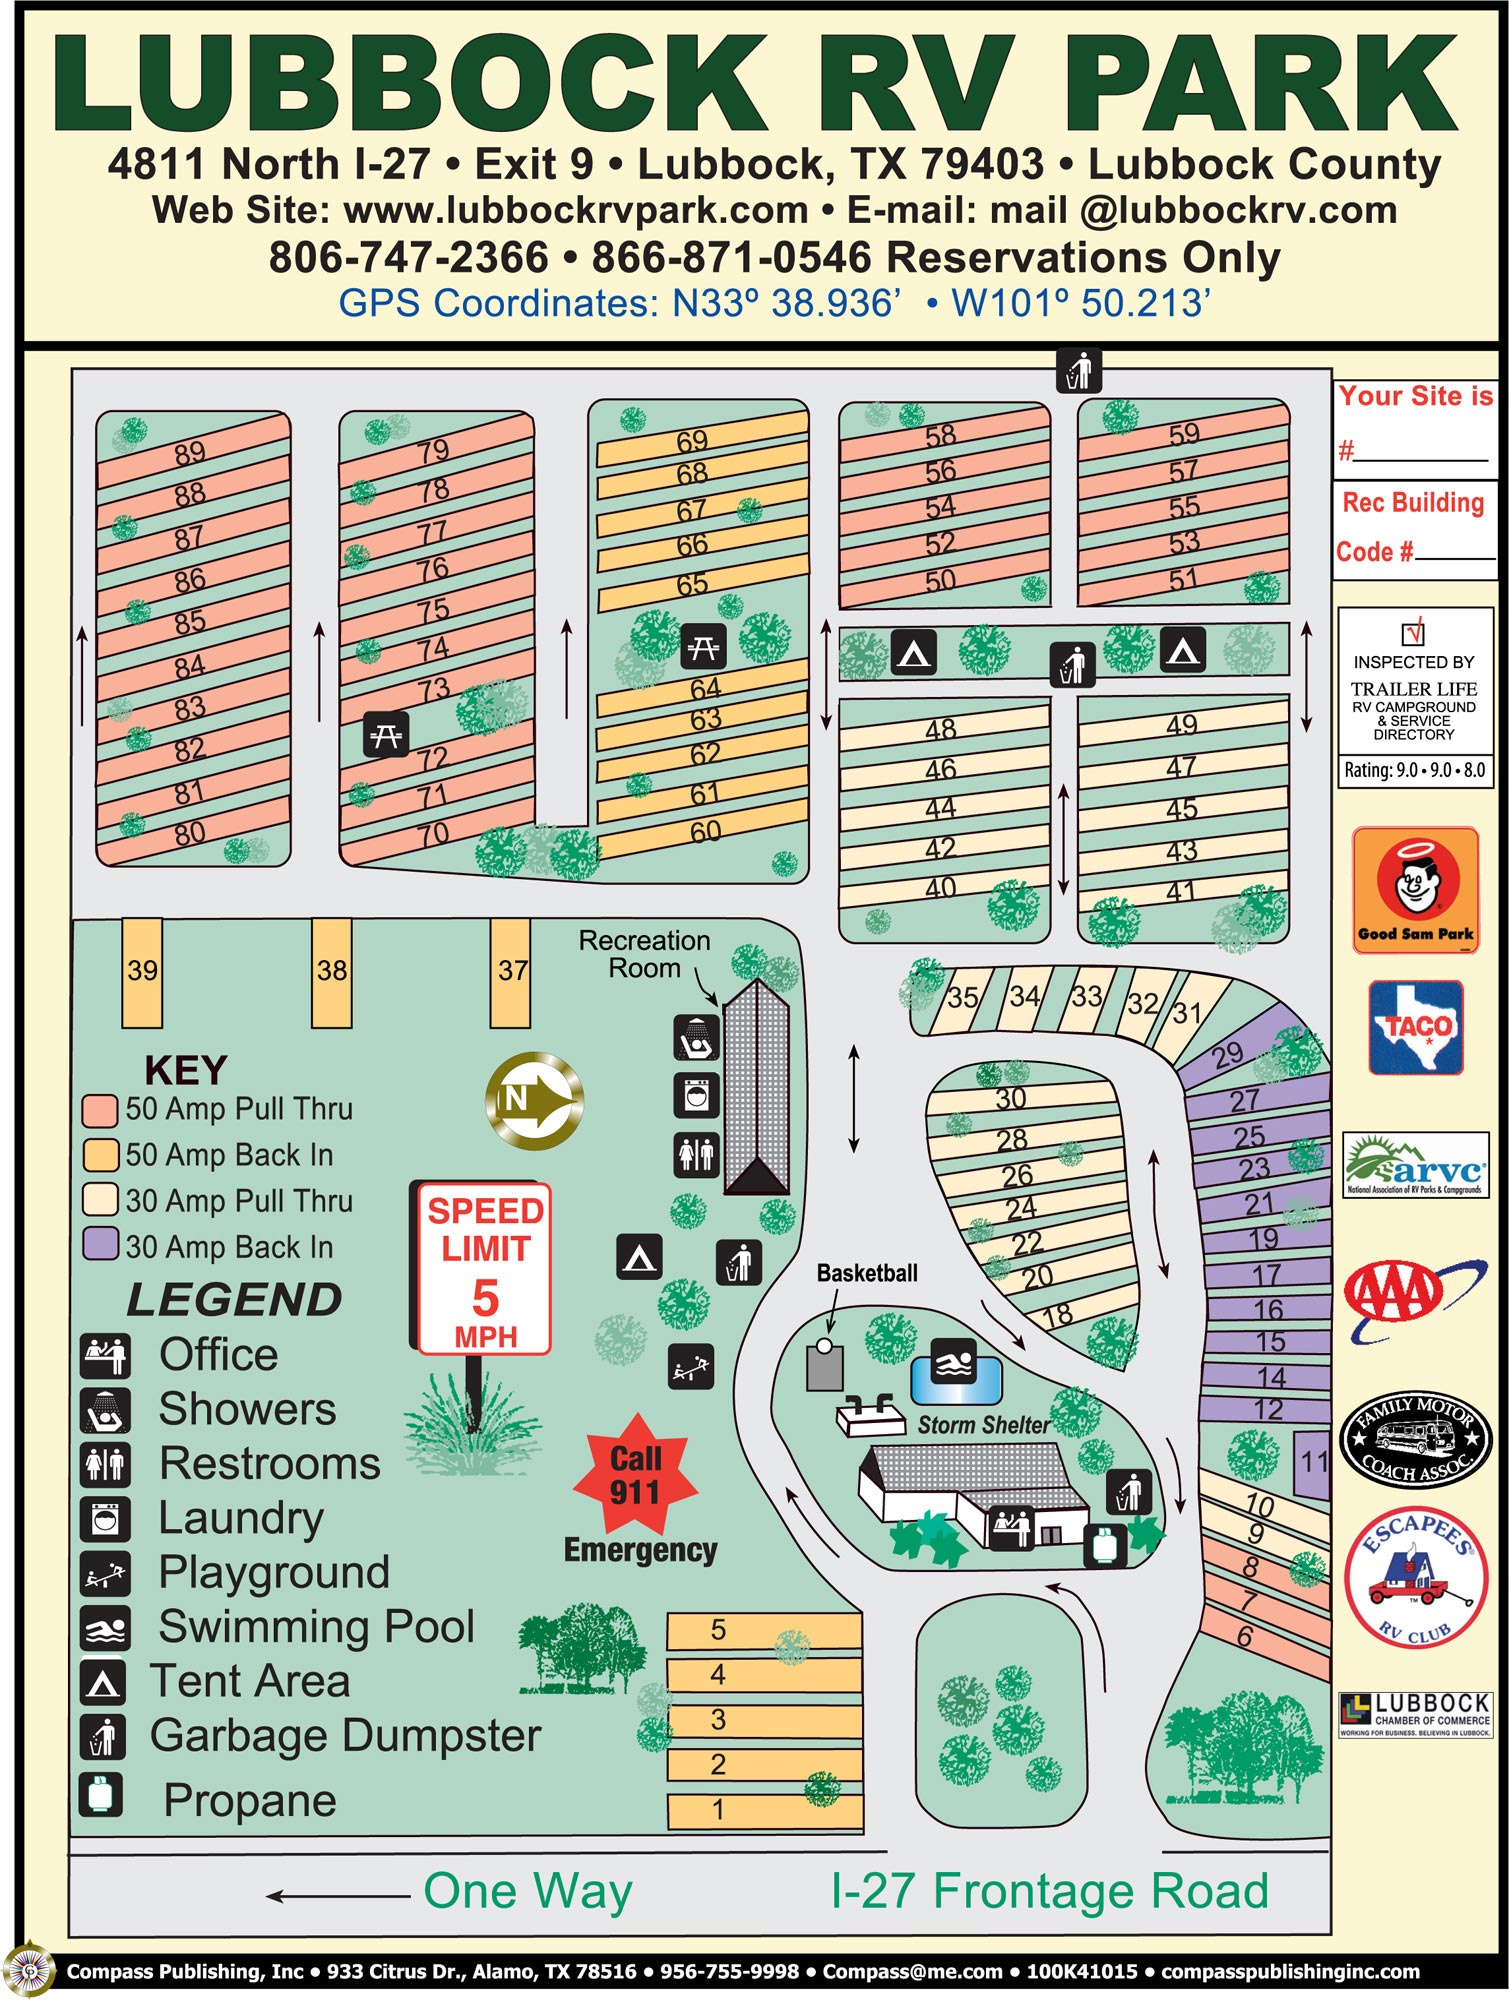 Lubbock Rv Park Inc. | Photo Gallery - Texas Rv Parks Map